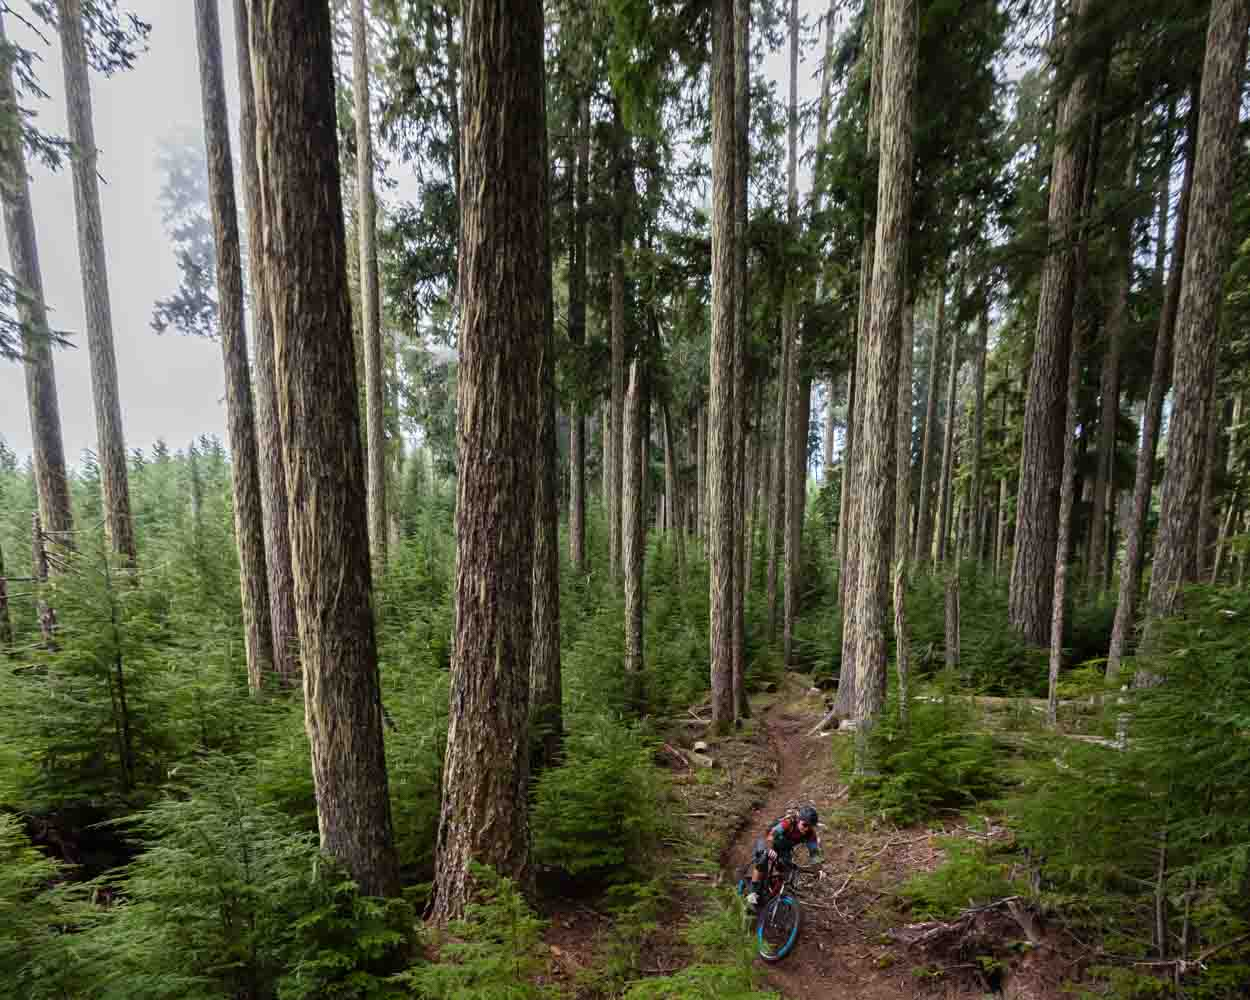 A single mountain biker descends through old grown forest in Oakridge, Oregon